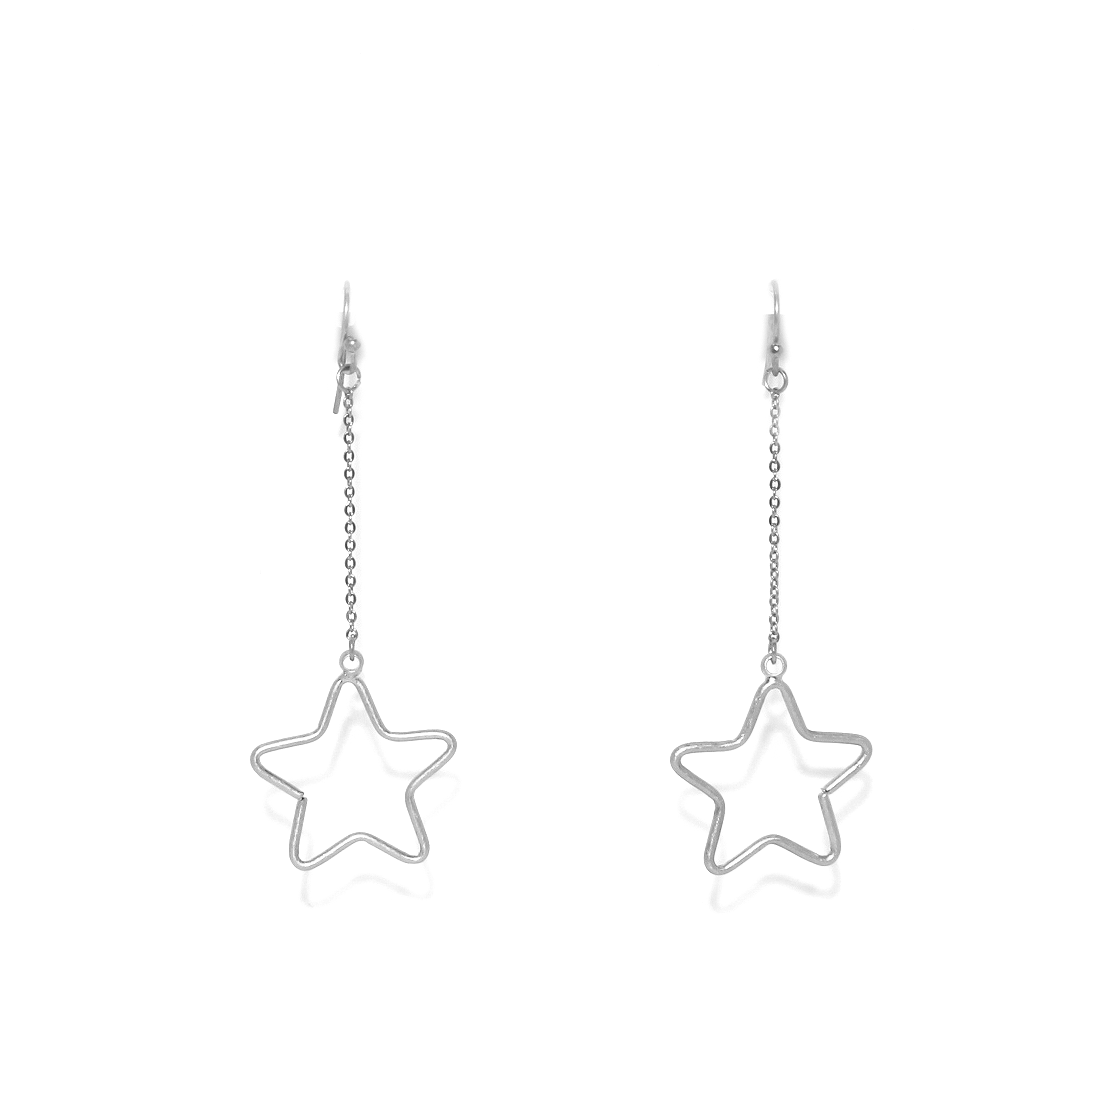 Envy Silver Star Drop Earrings